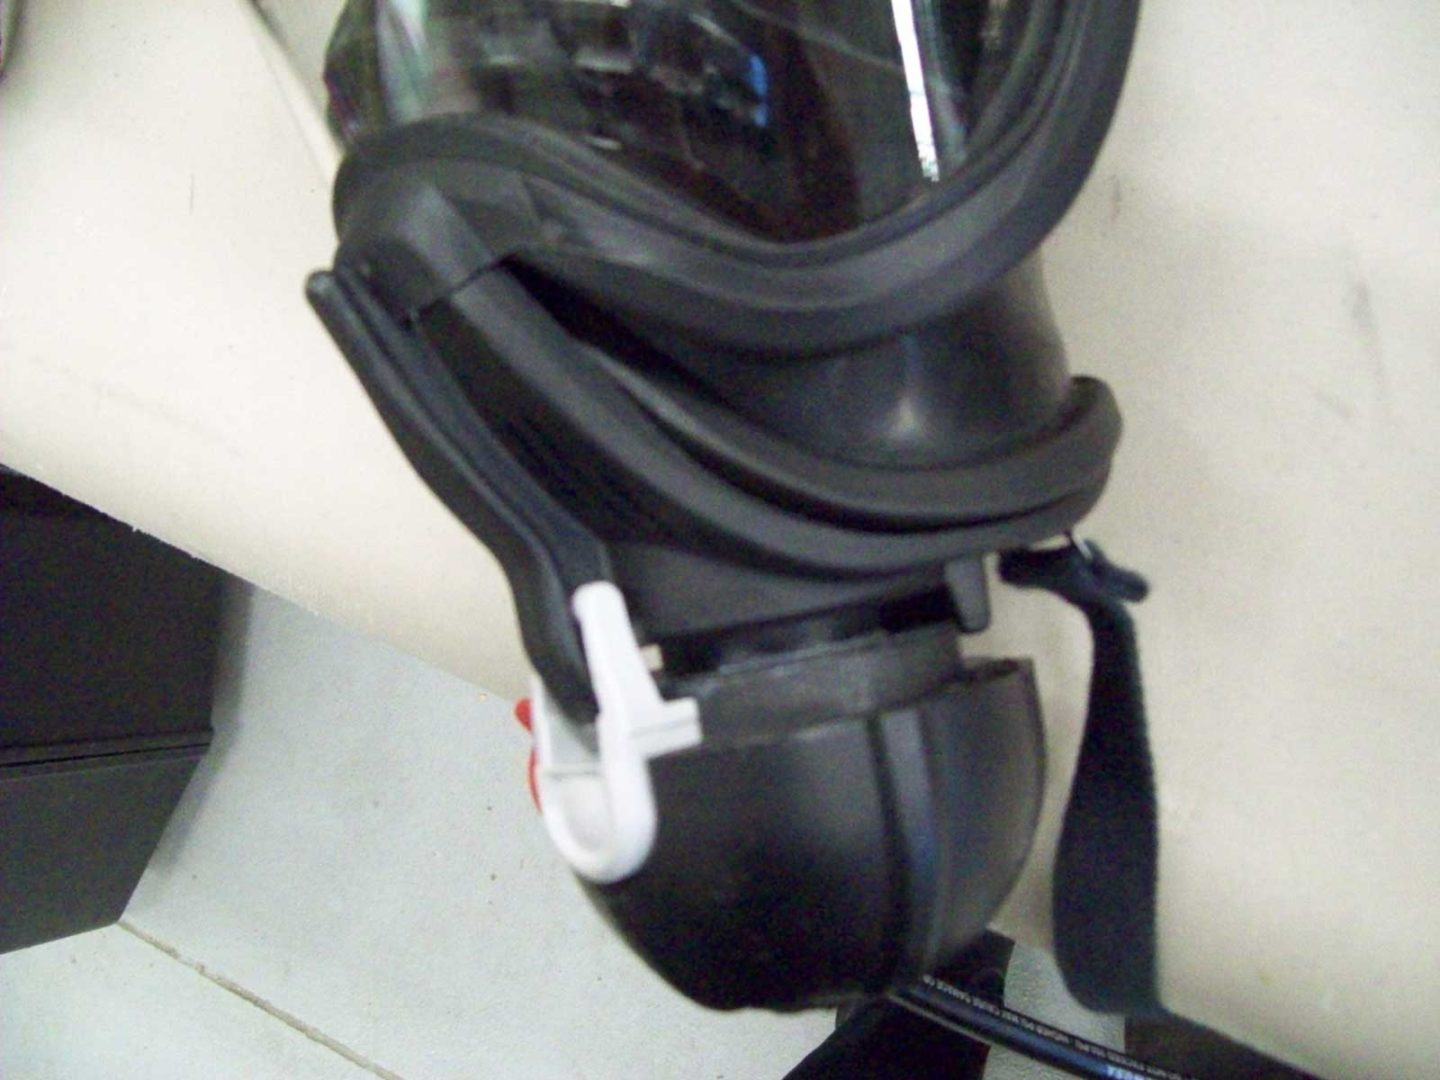 Improper connection SCBA MMR to face piece